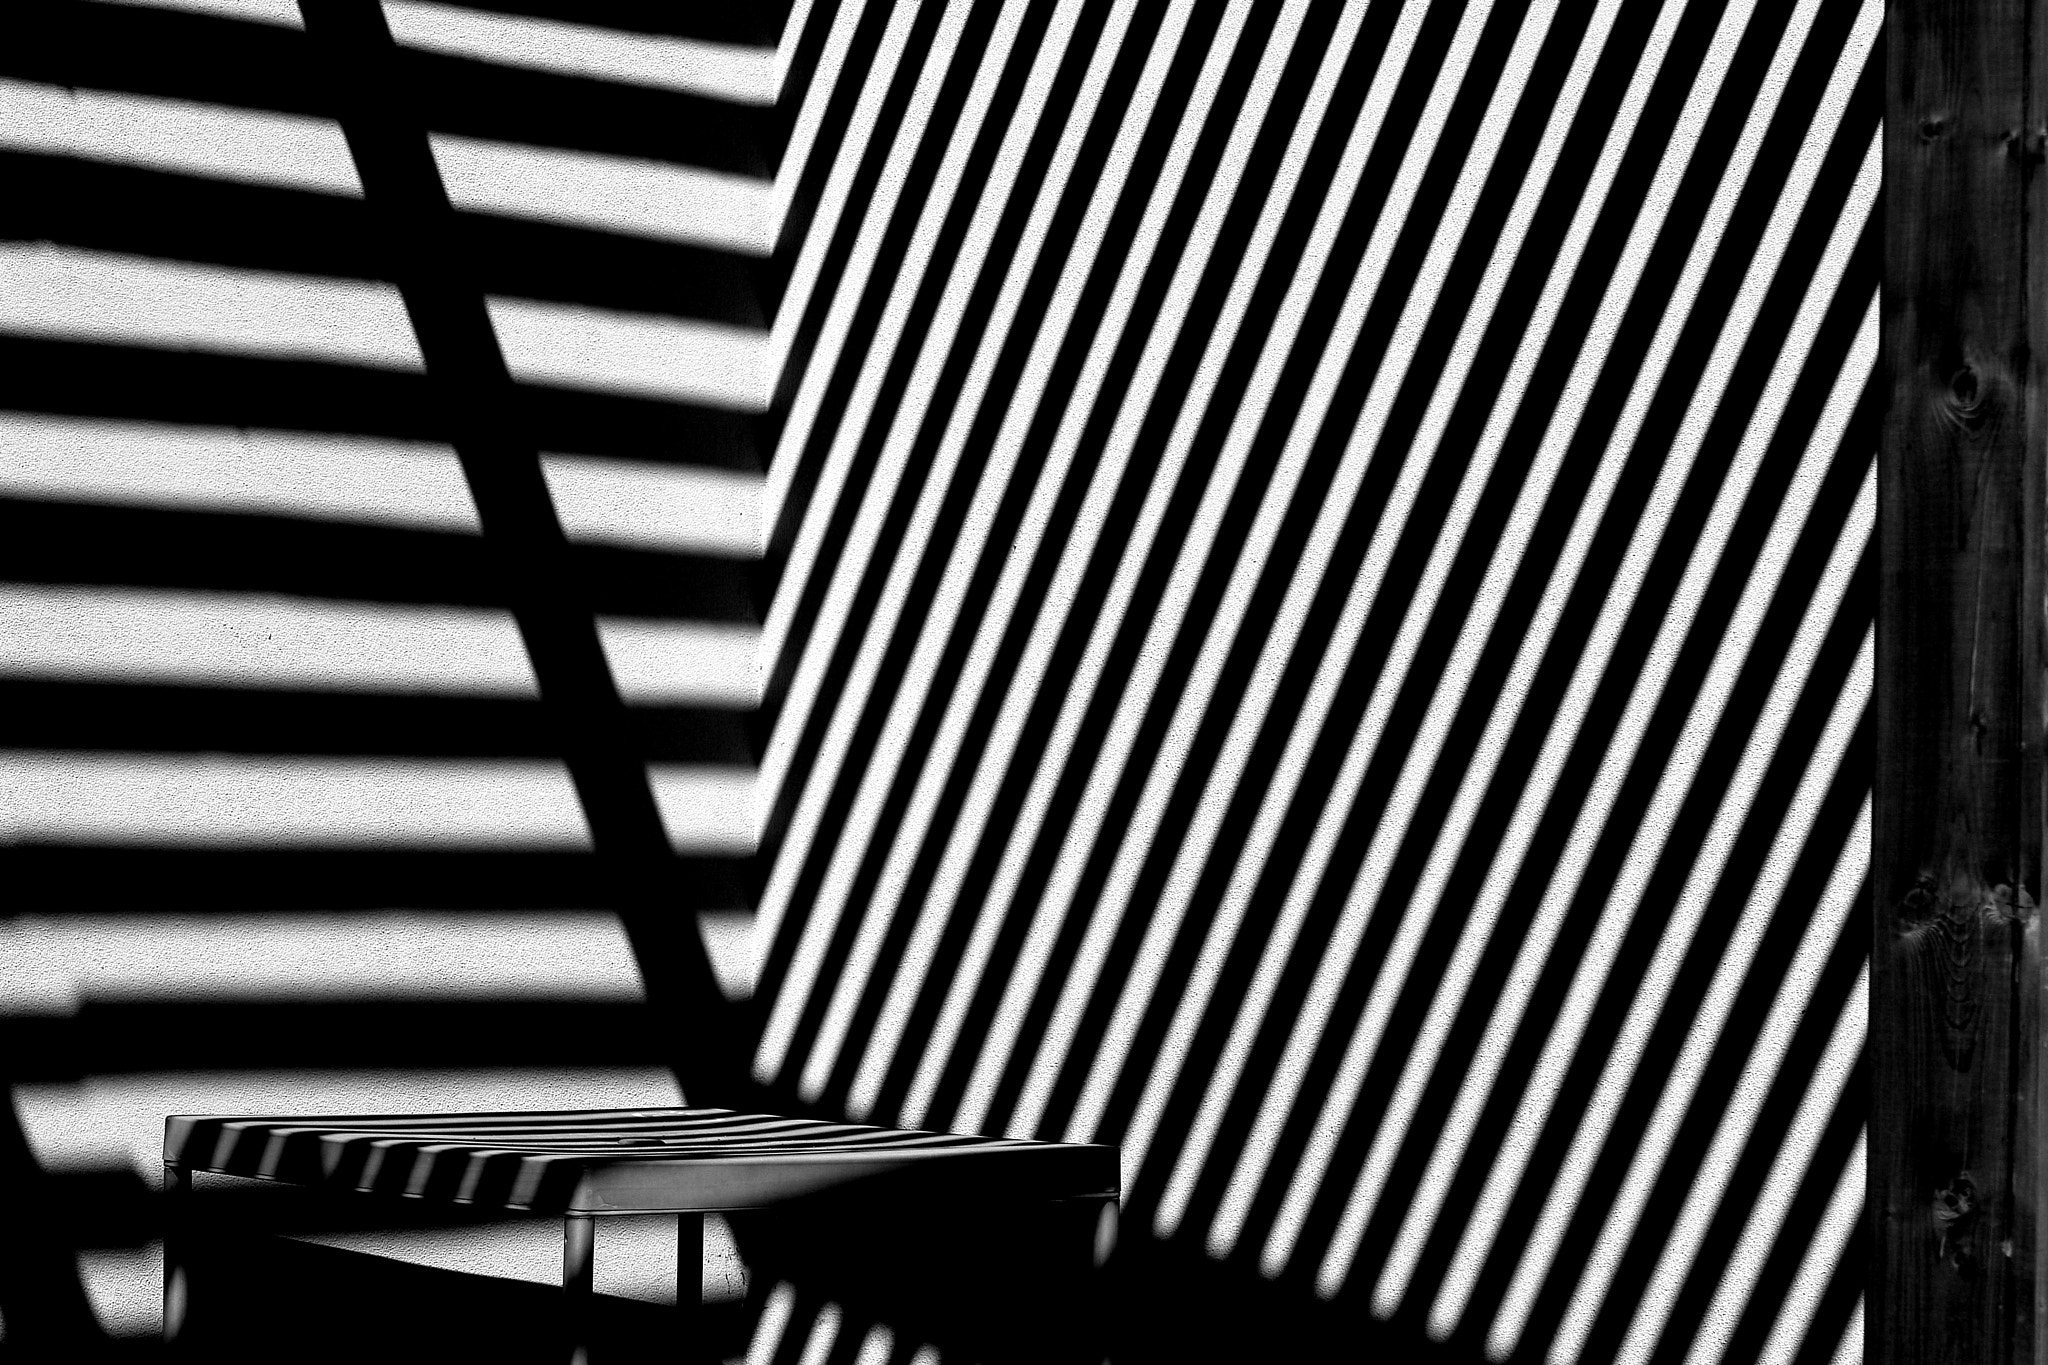 Photograph shadows *** by cesare schiraldi on 500px